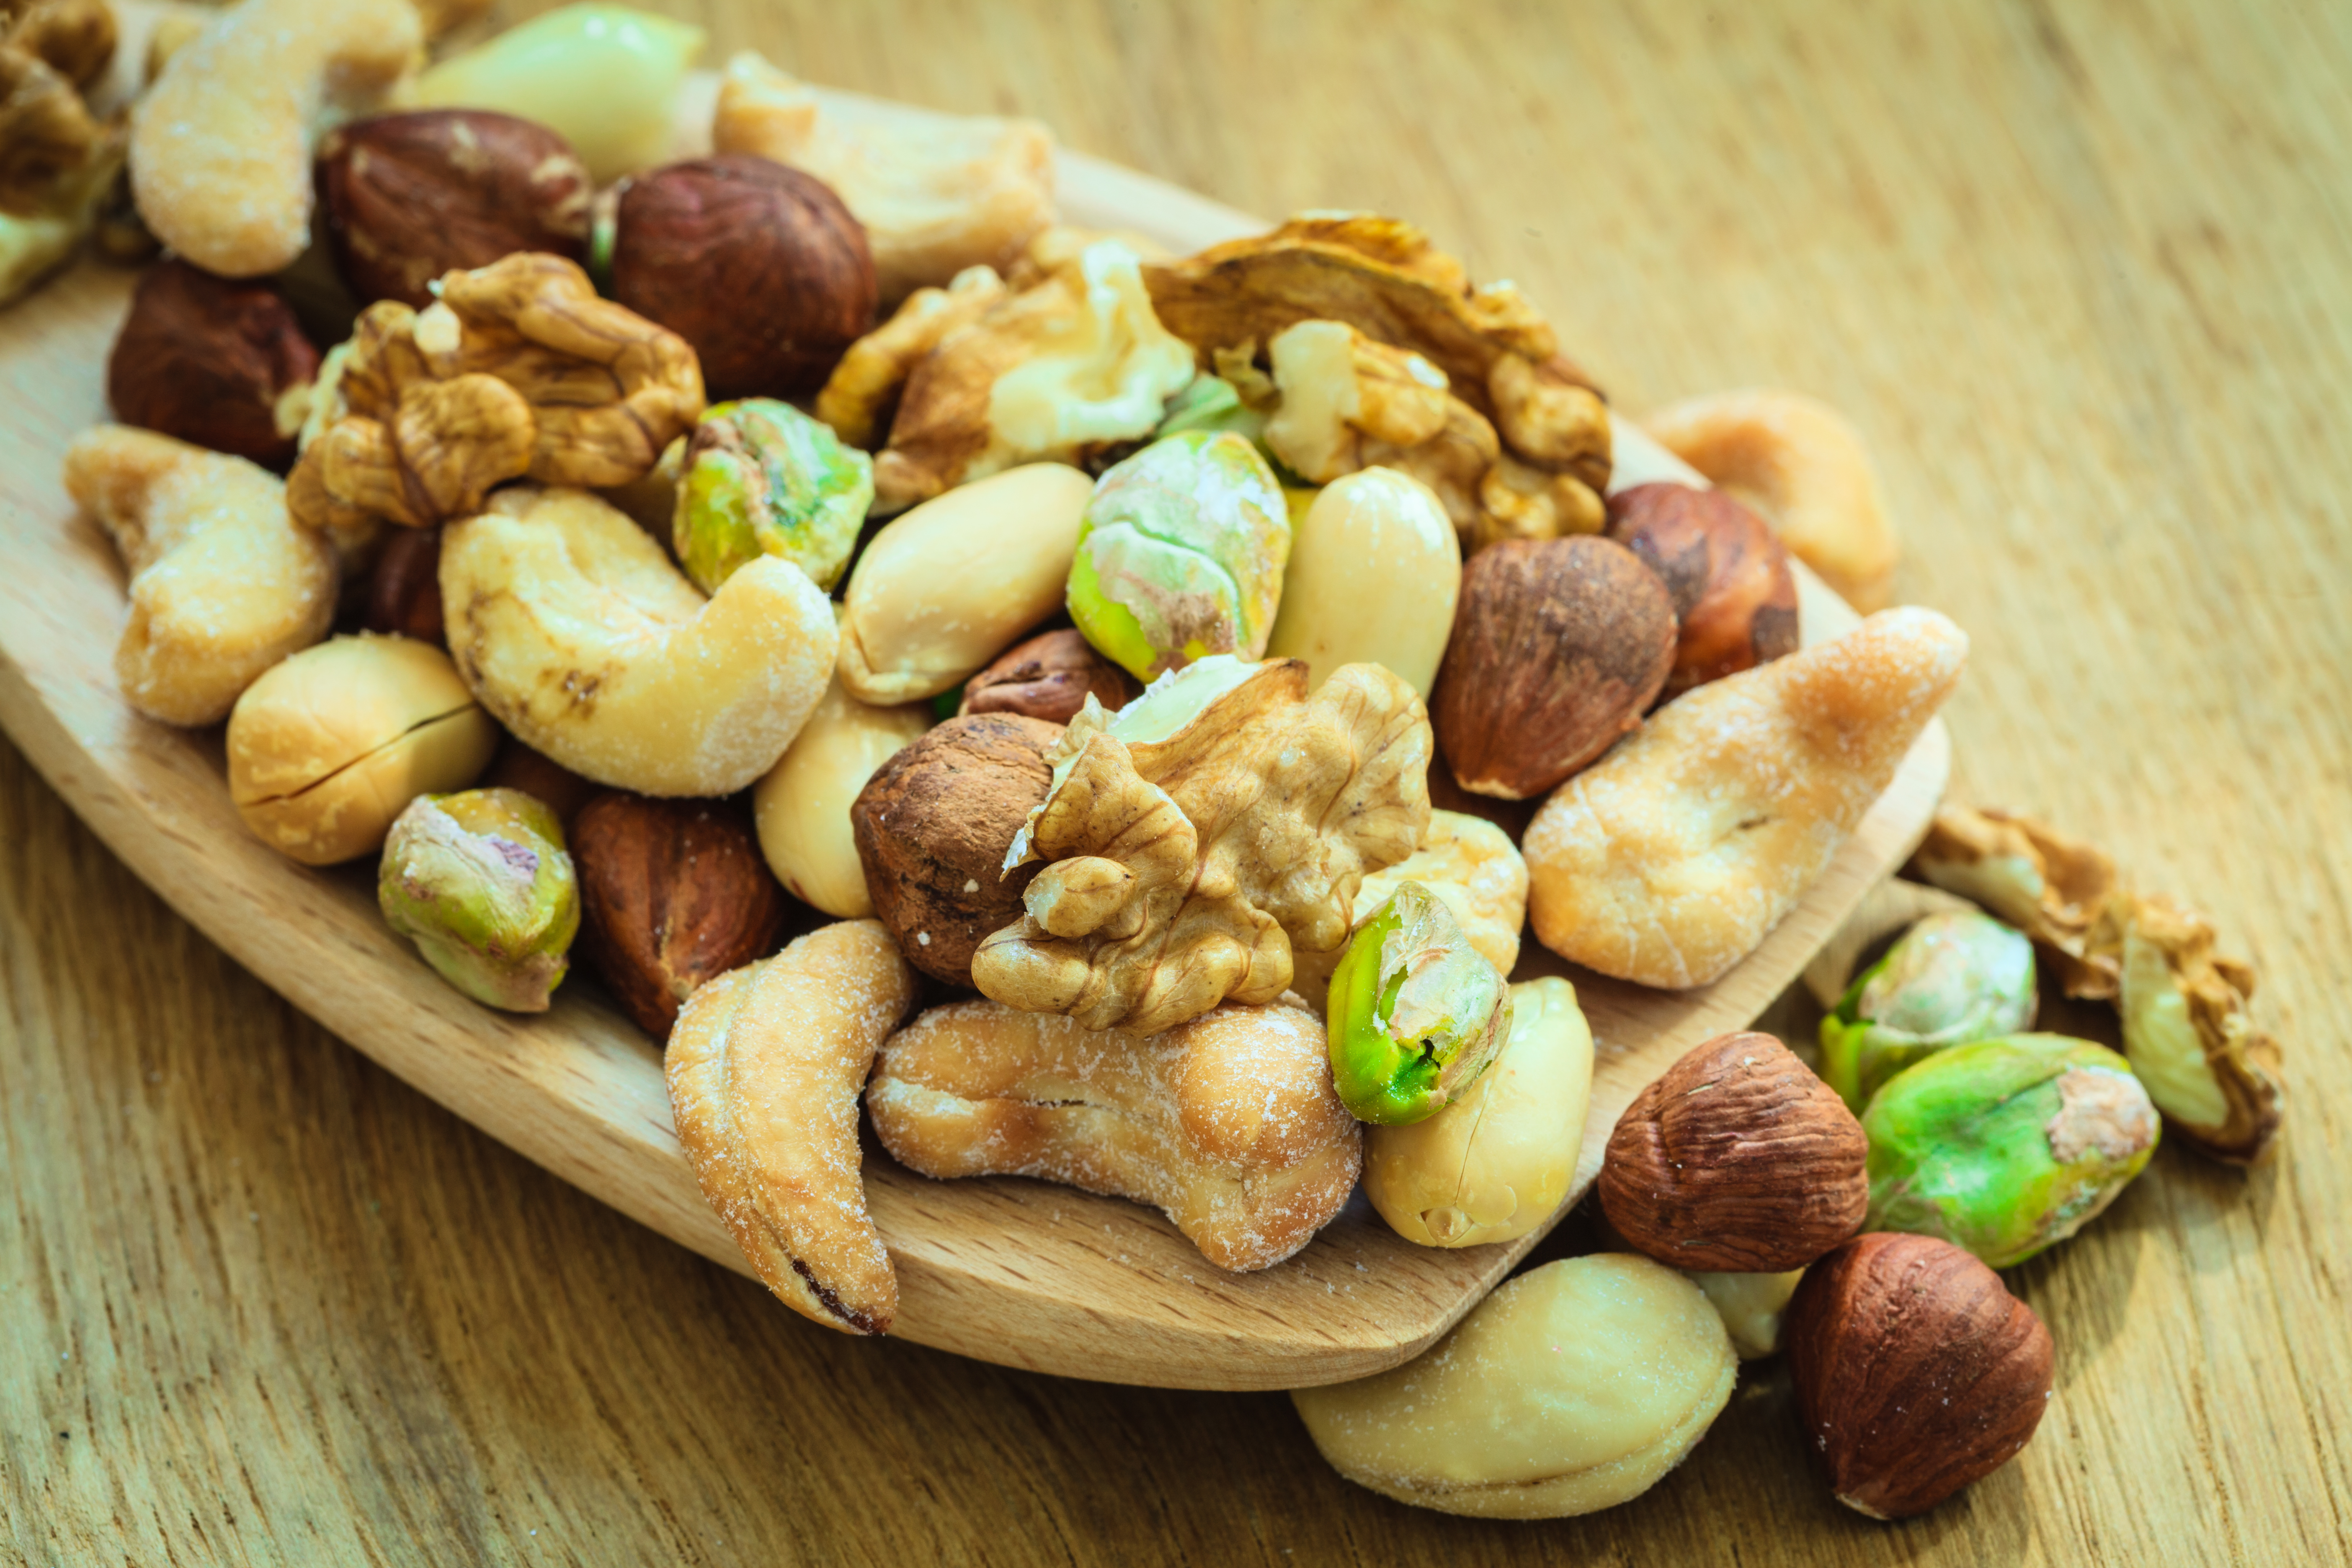 Latest Report: Nuts and Heart Disease